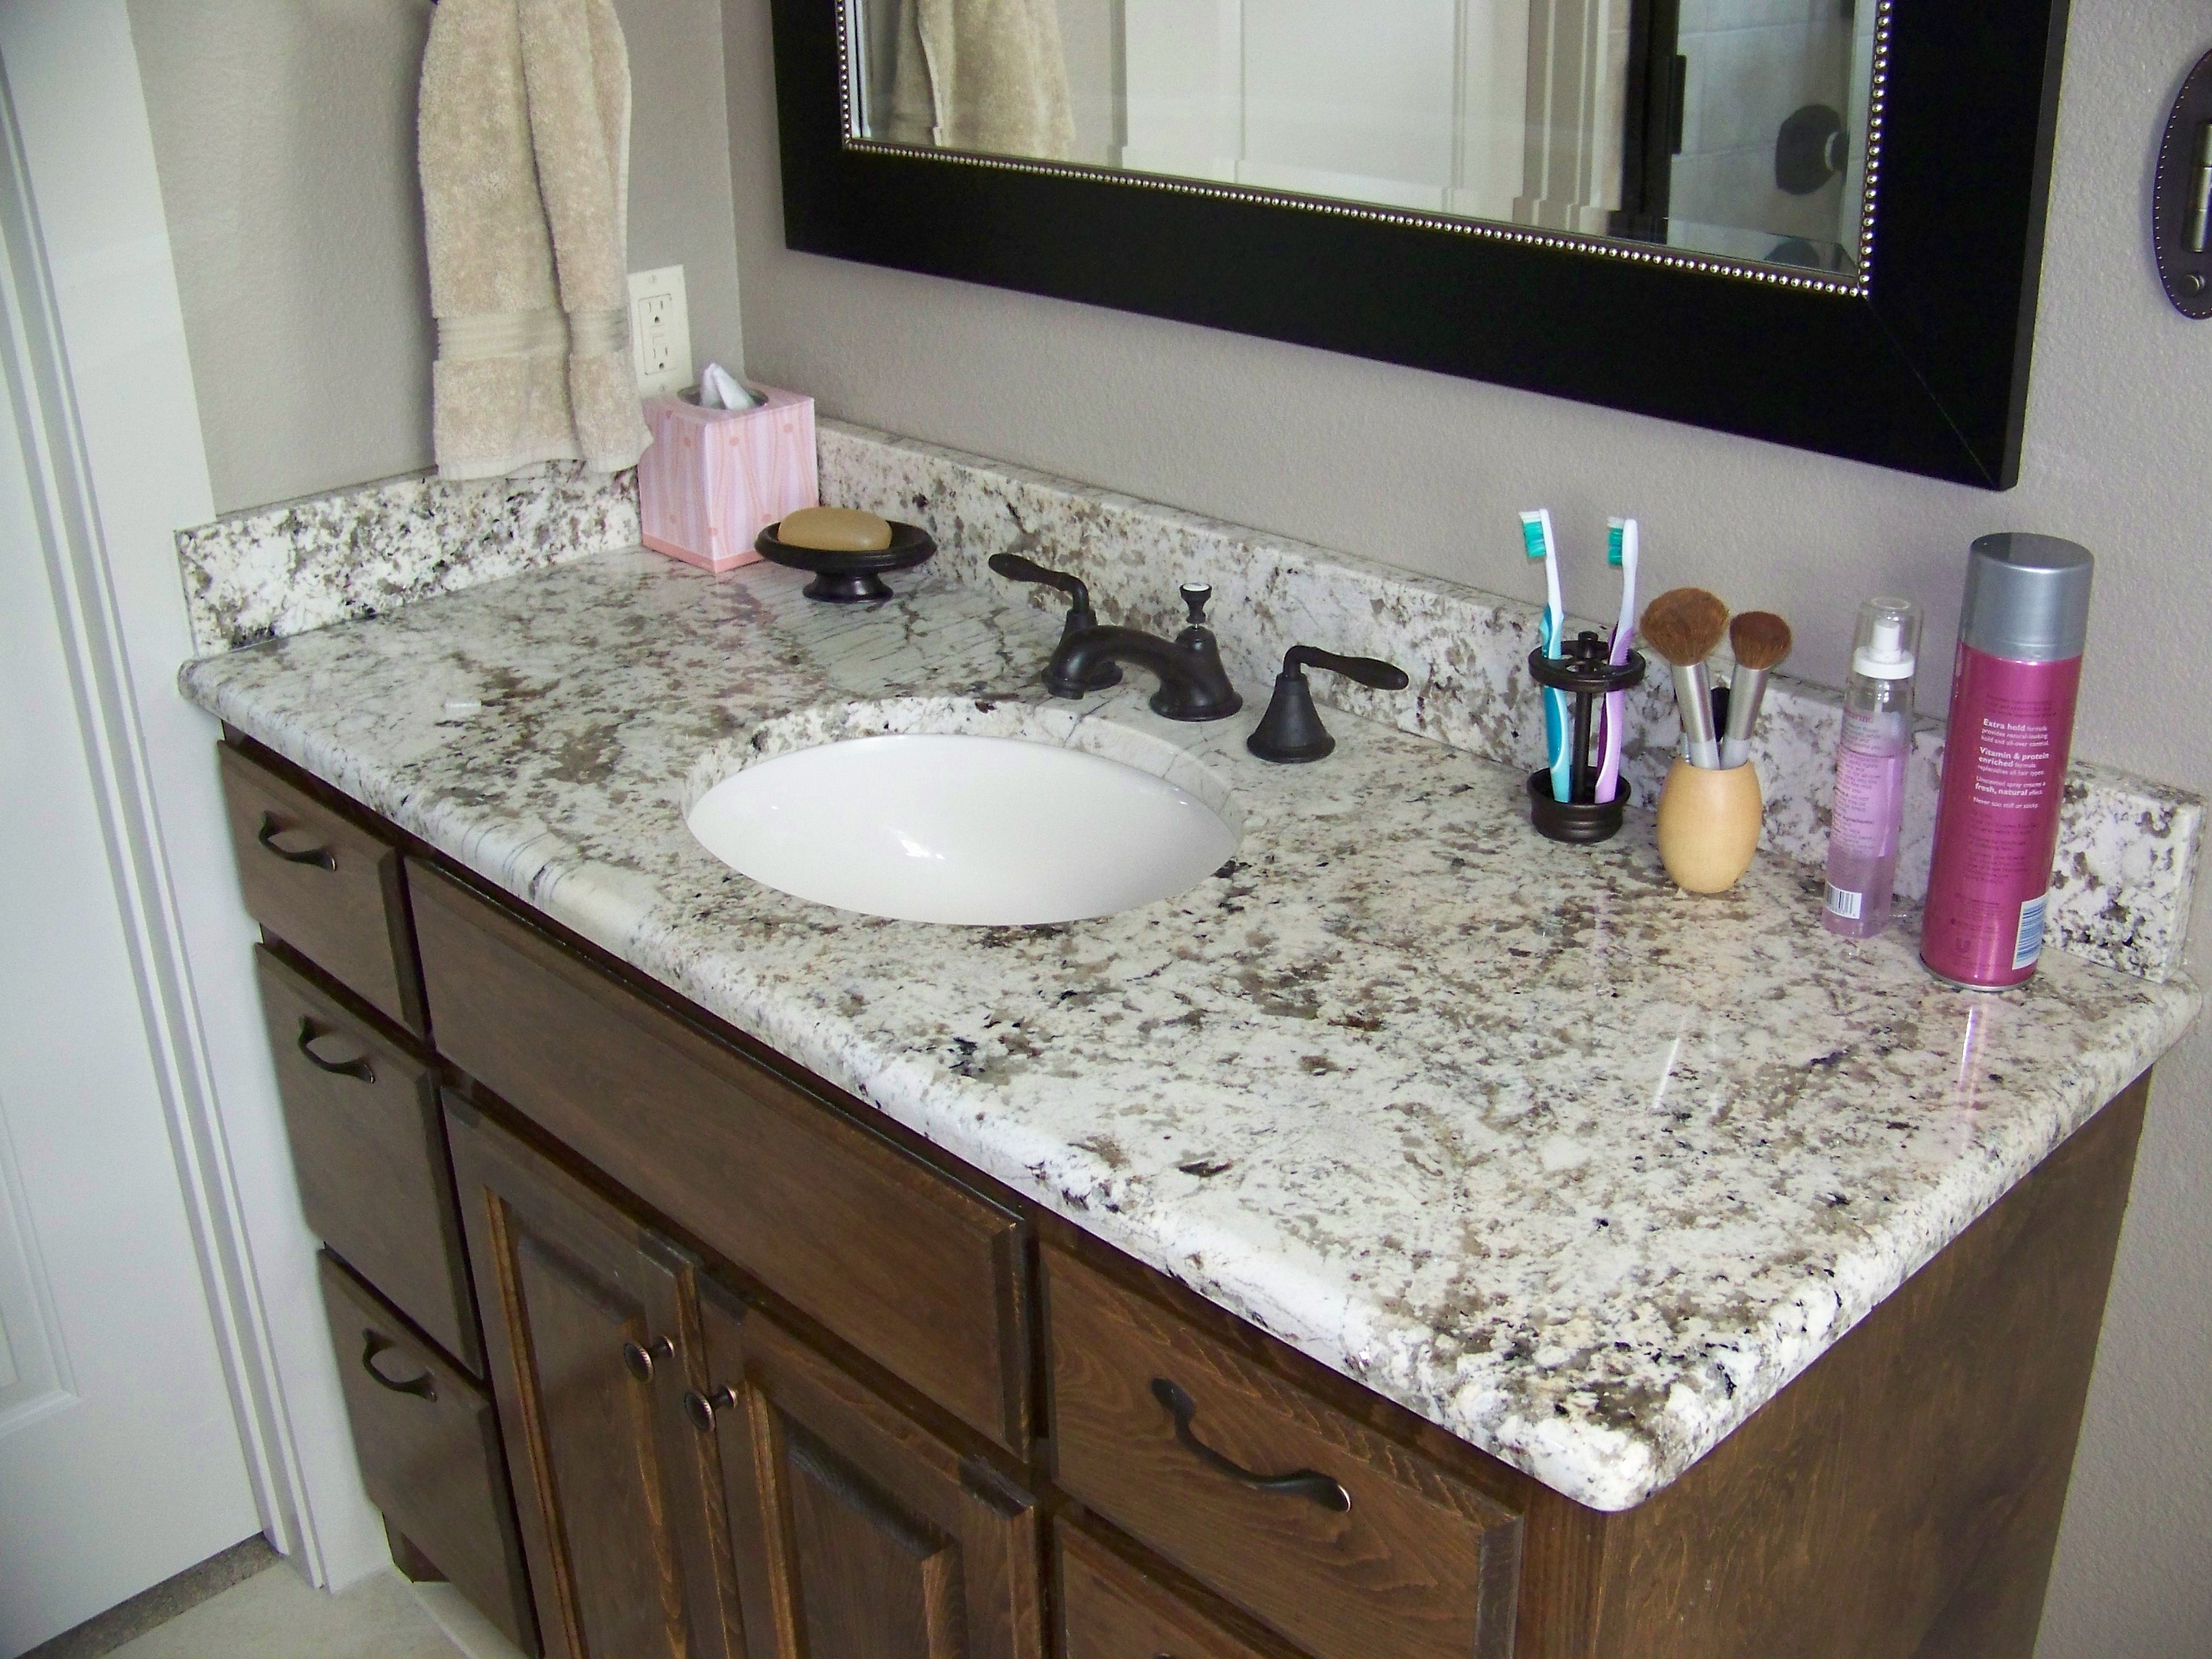 Hill country Granite Photo Gallery - Photos of granite countertops ...